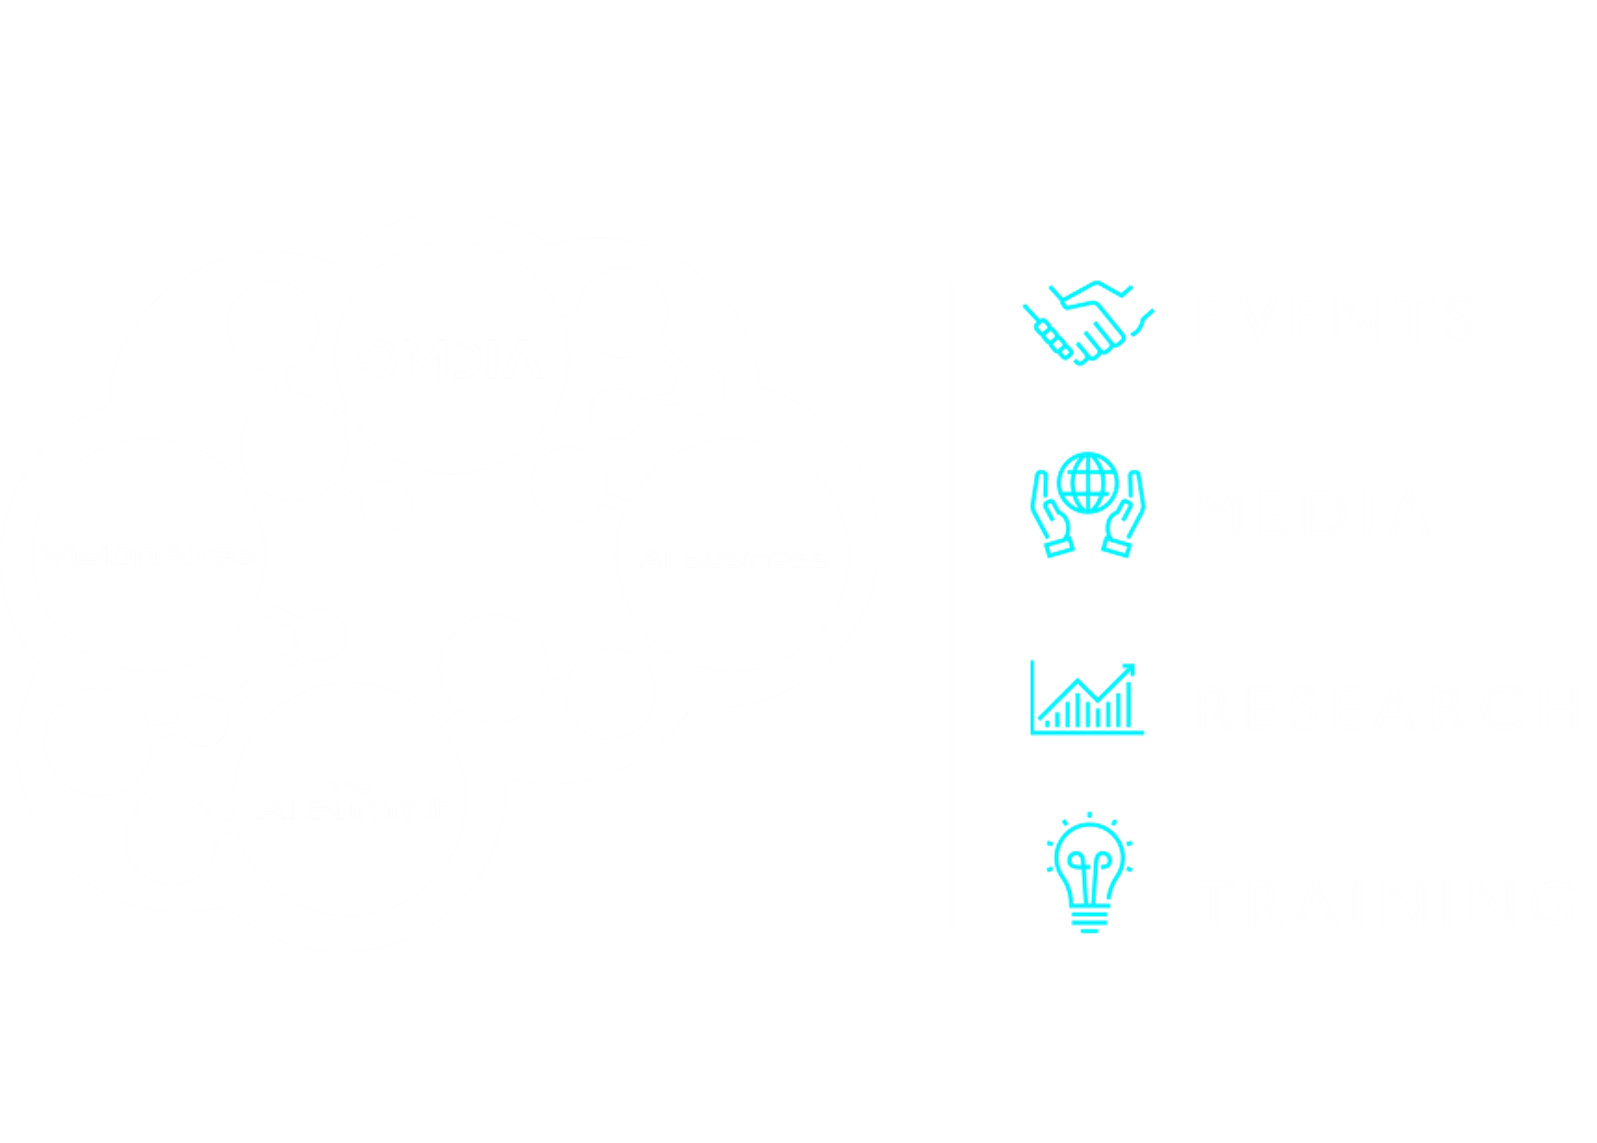 Four components of the AI Summit Series